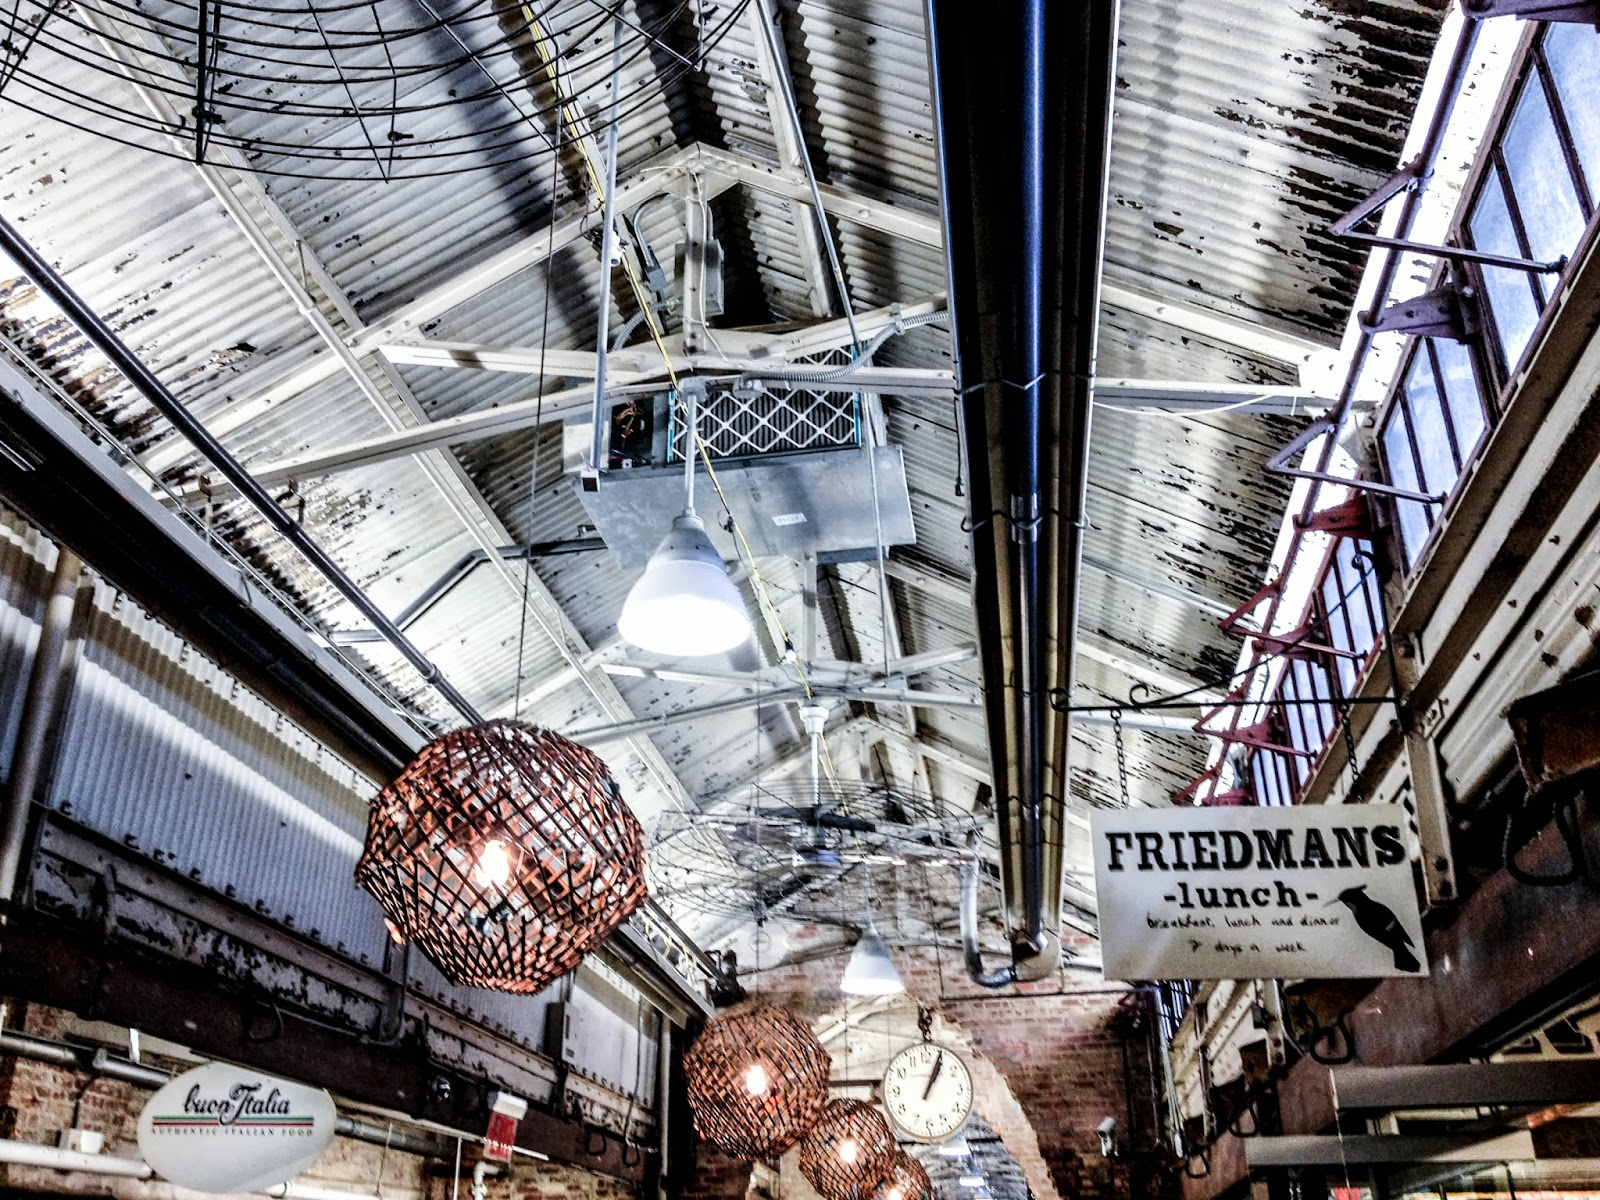 chelsea market place, new york city, chelsea market, chelsea new york, chelsea, meat packing district, new york sites